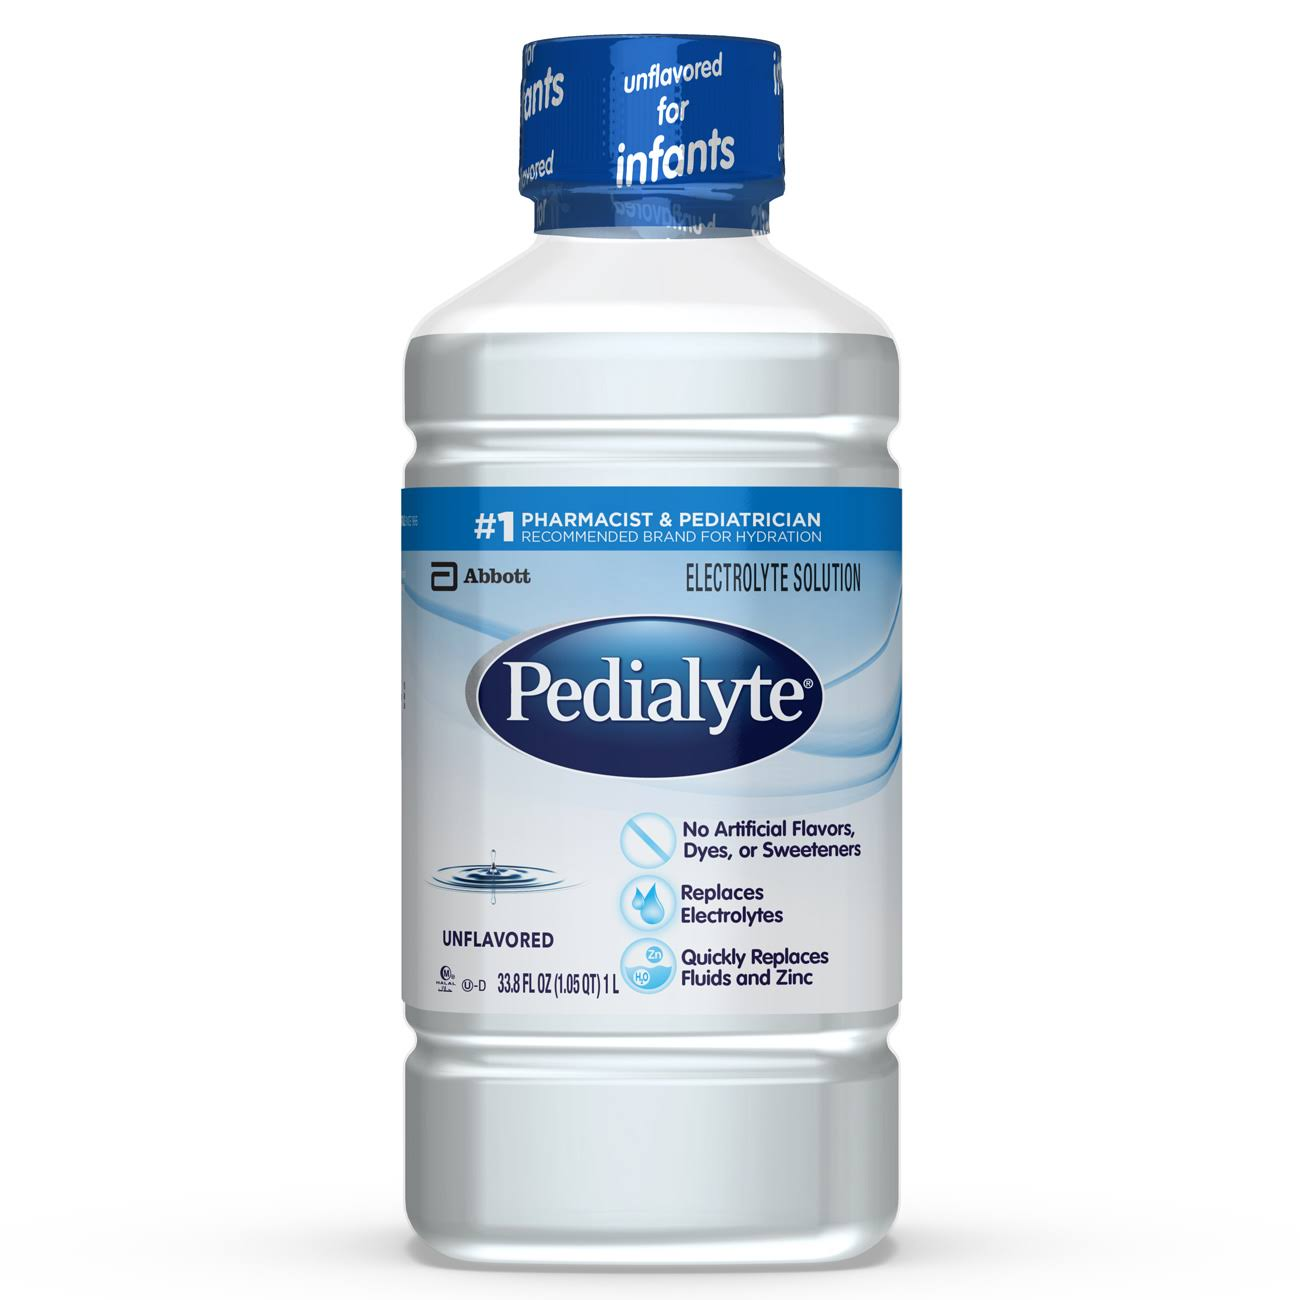 Pedialyte Oral Electrolyte Maintenance Solution - Unflavored, 1L